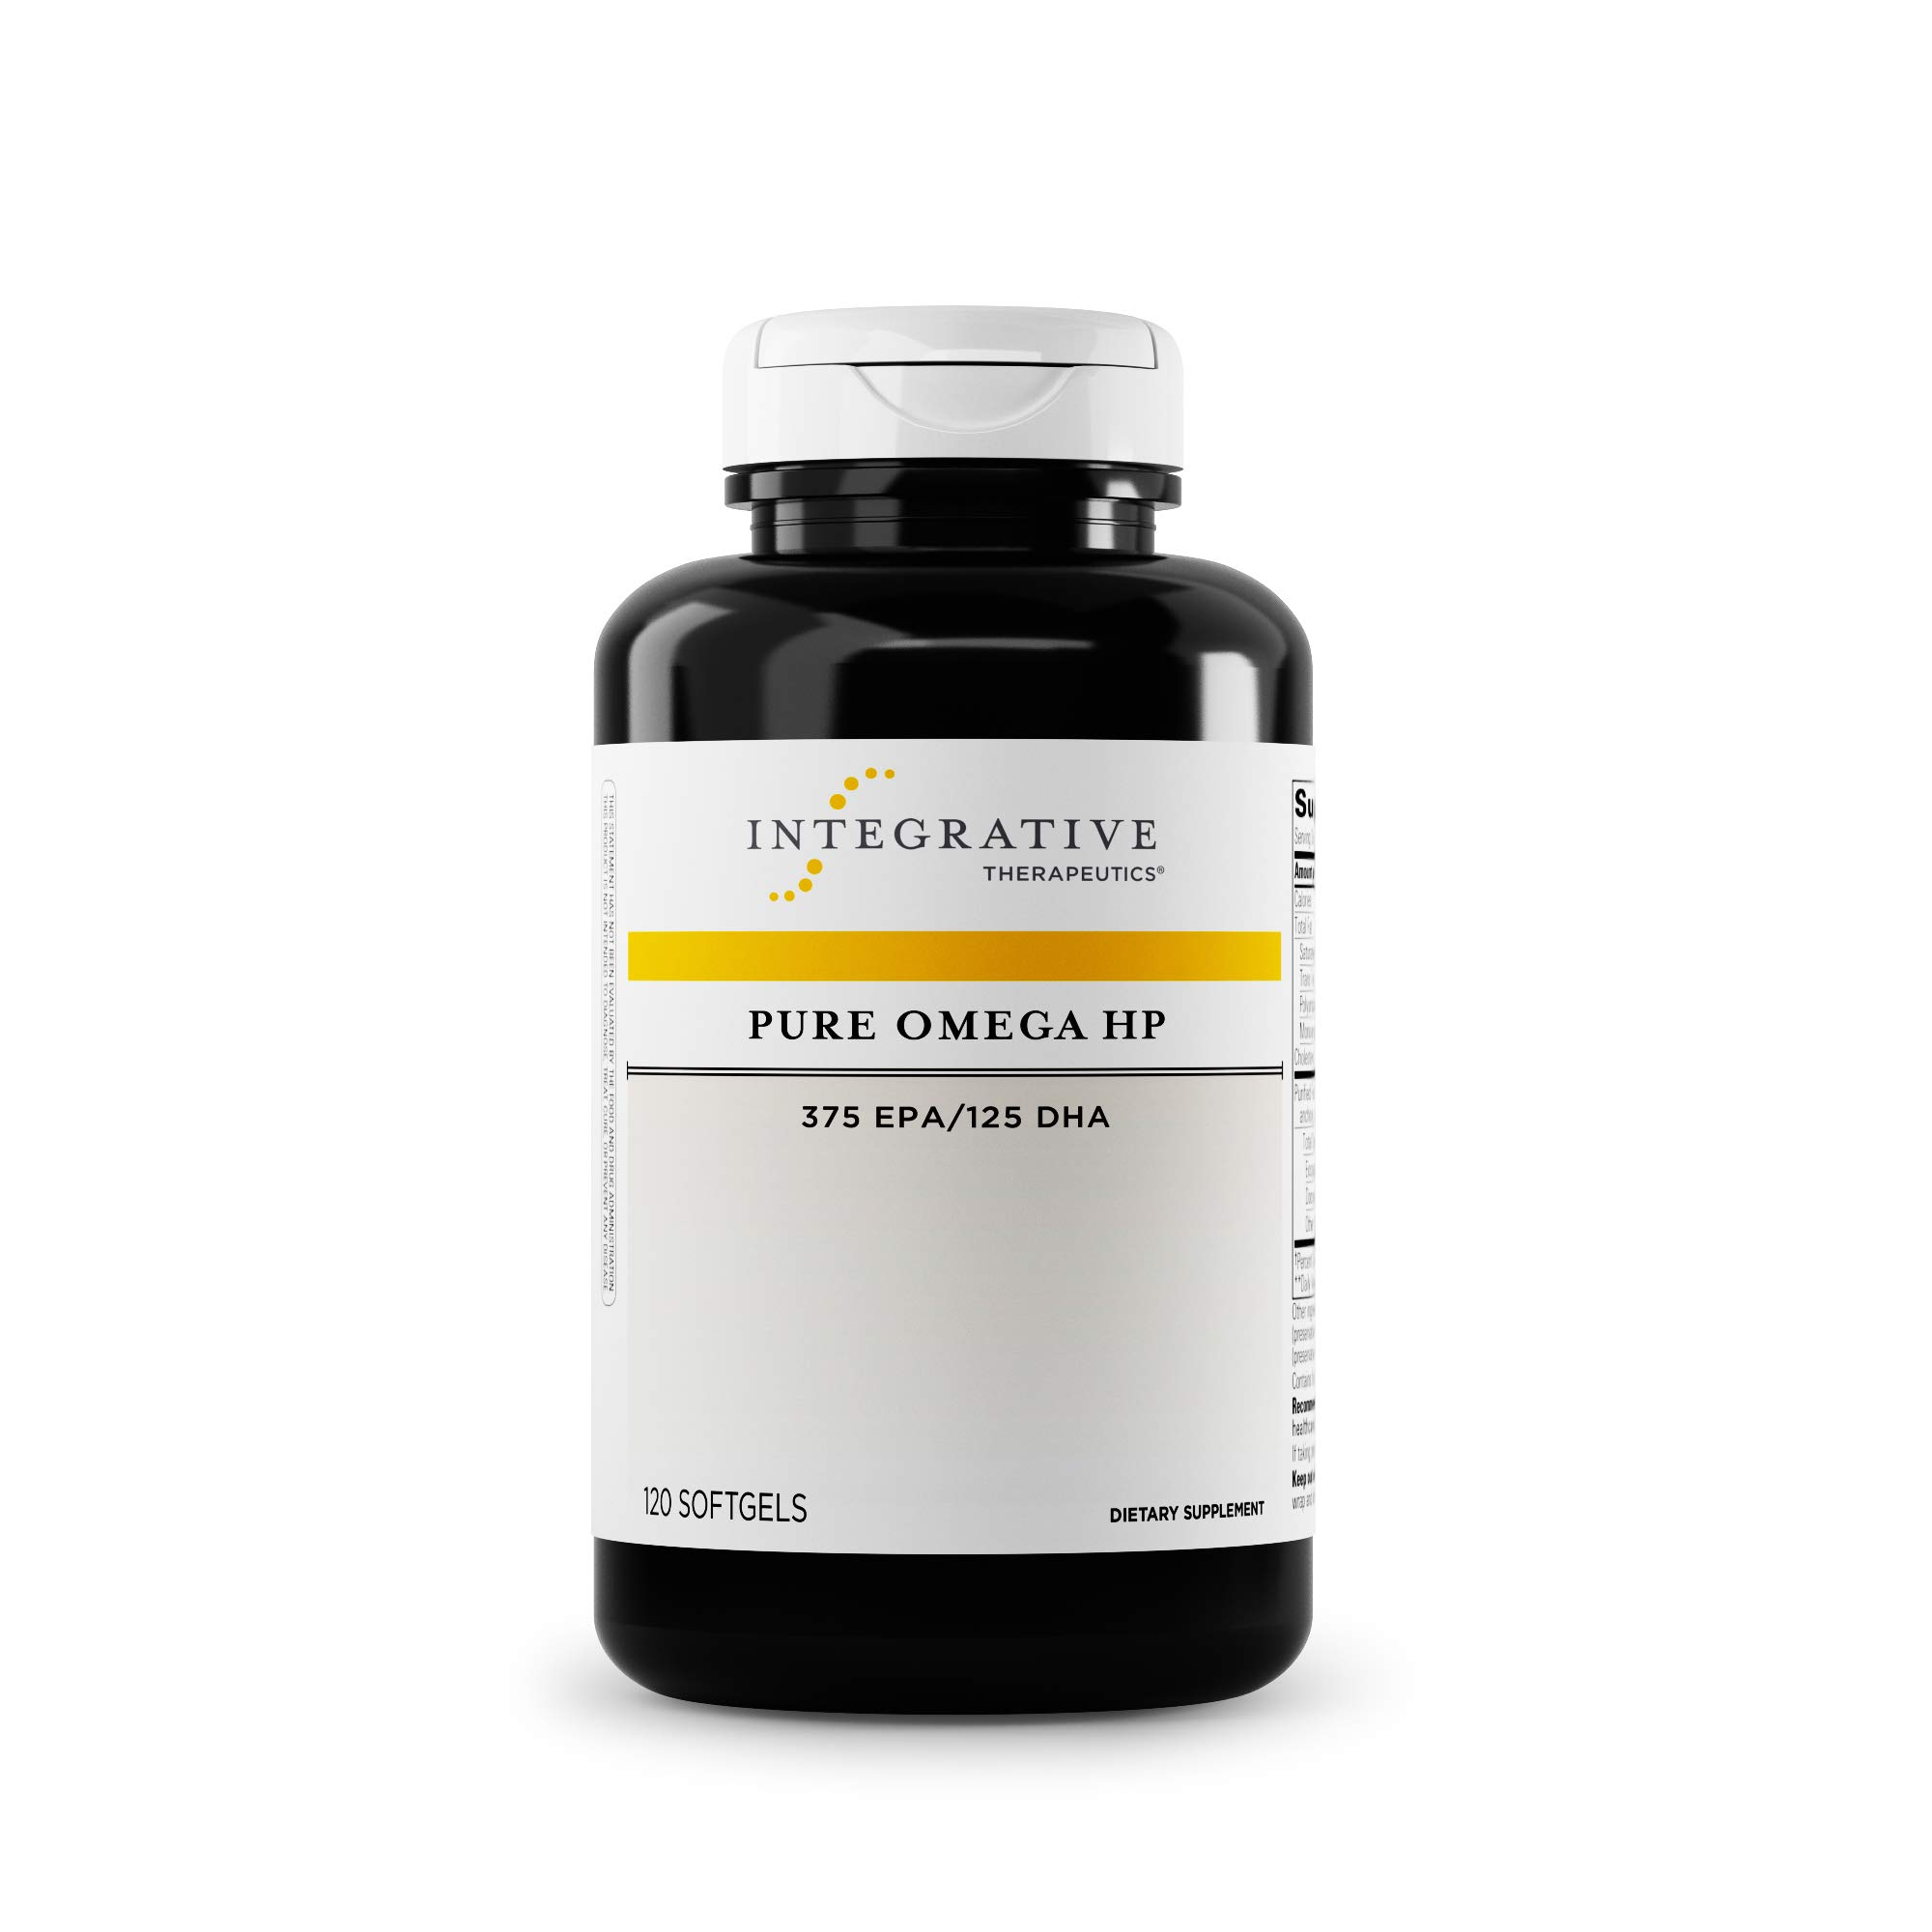 Integrative Therapeutics - Pure Omega HP Fish Oil Softgels - 2300 mg Omega 3 Fatty Acids with EPA and DHA - Wild Fish Oil - No Fishy Burp Back -Sustainably Sourced - 120 Count